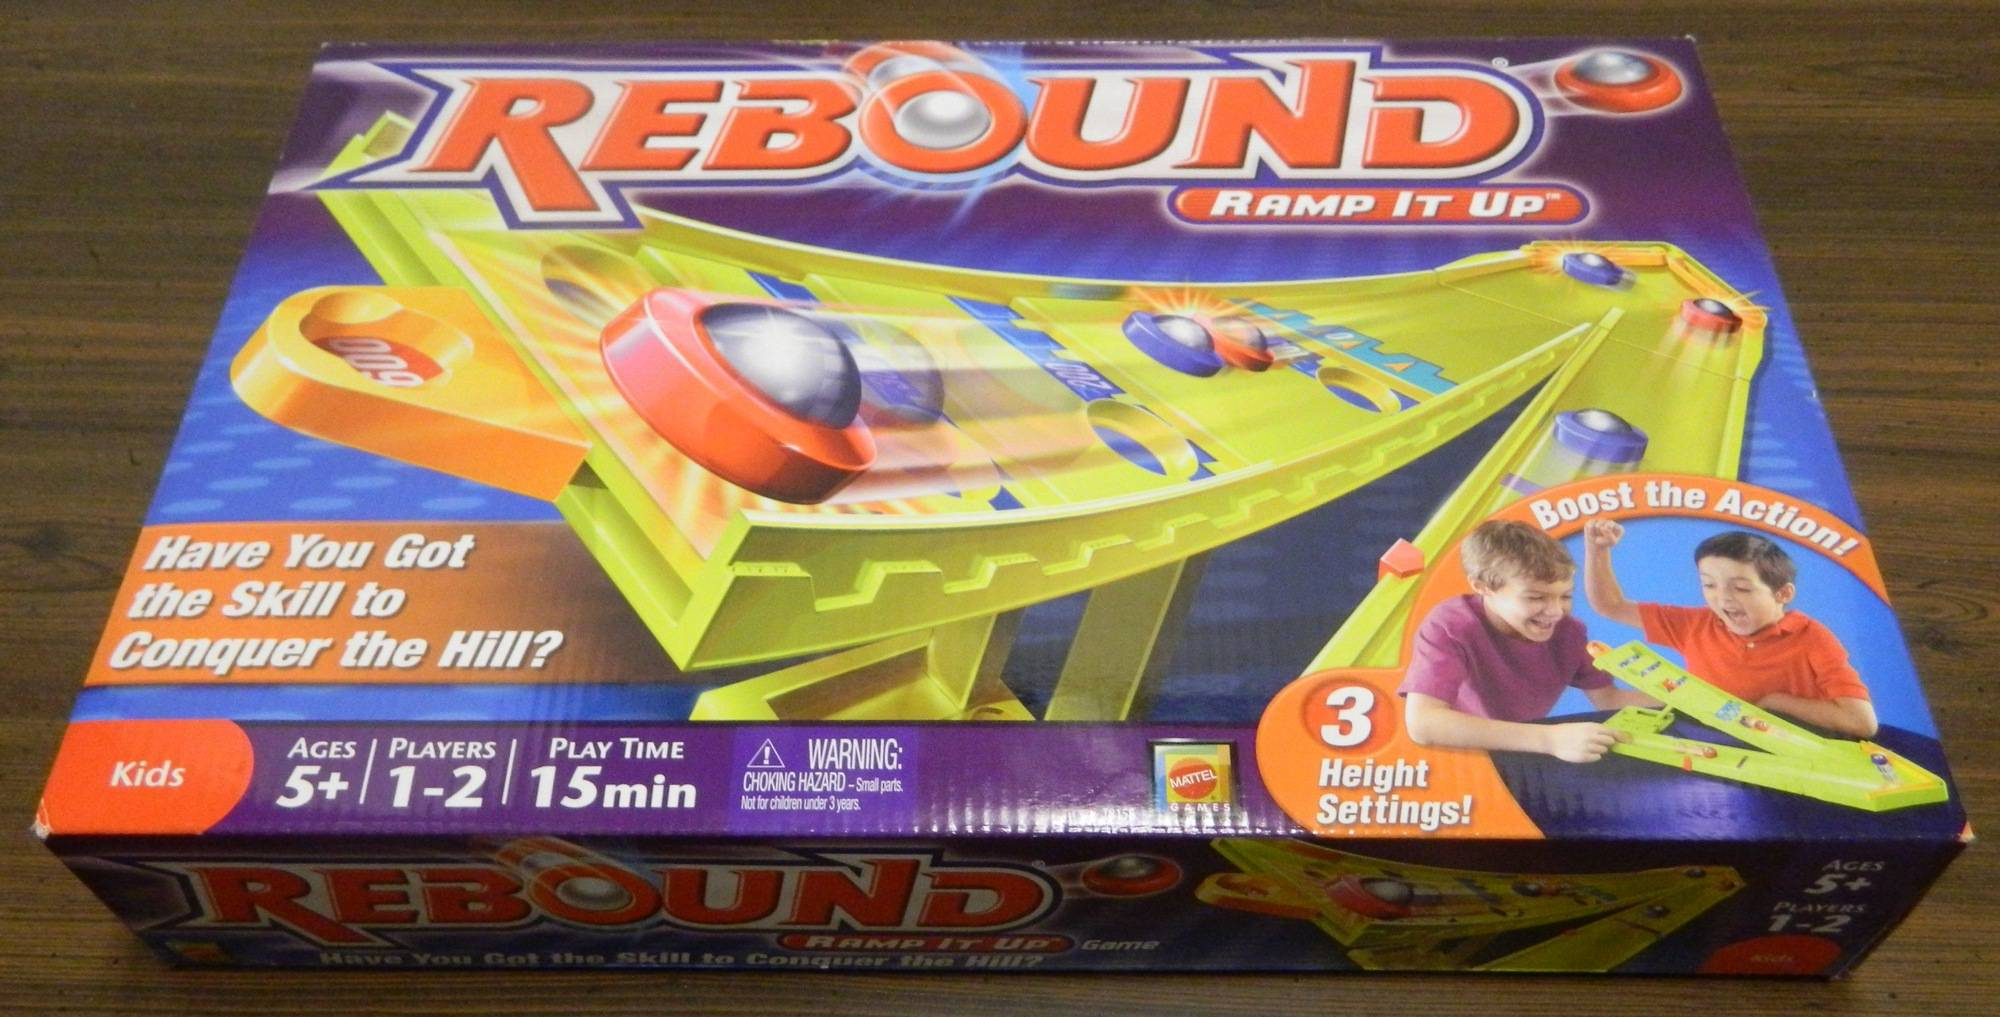 Box for Rebound Ramp It Up